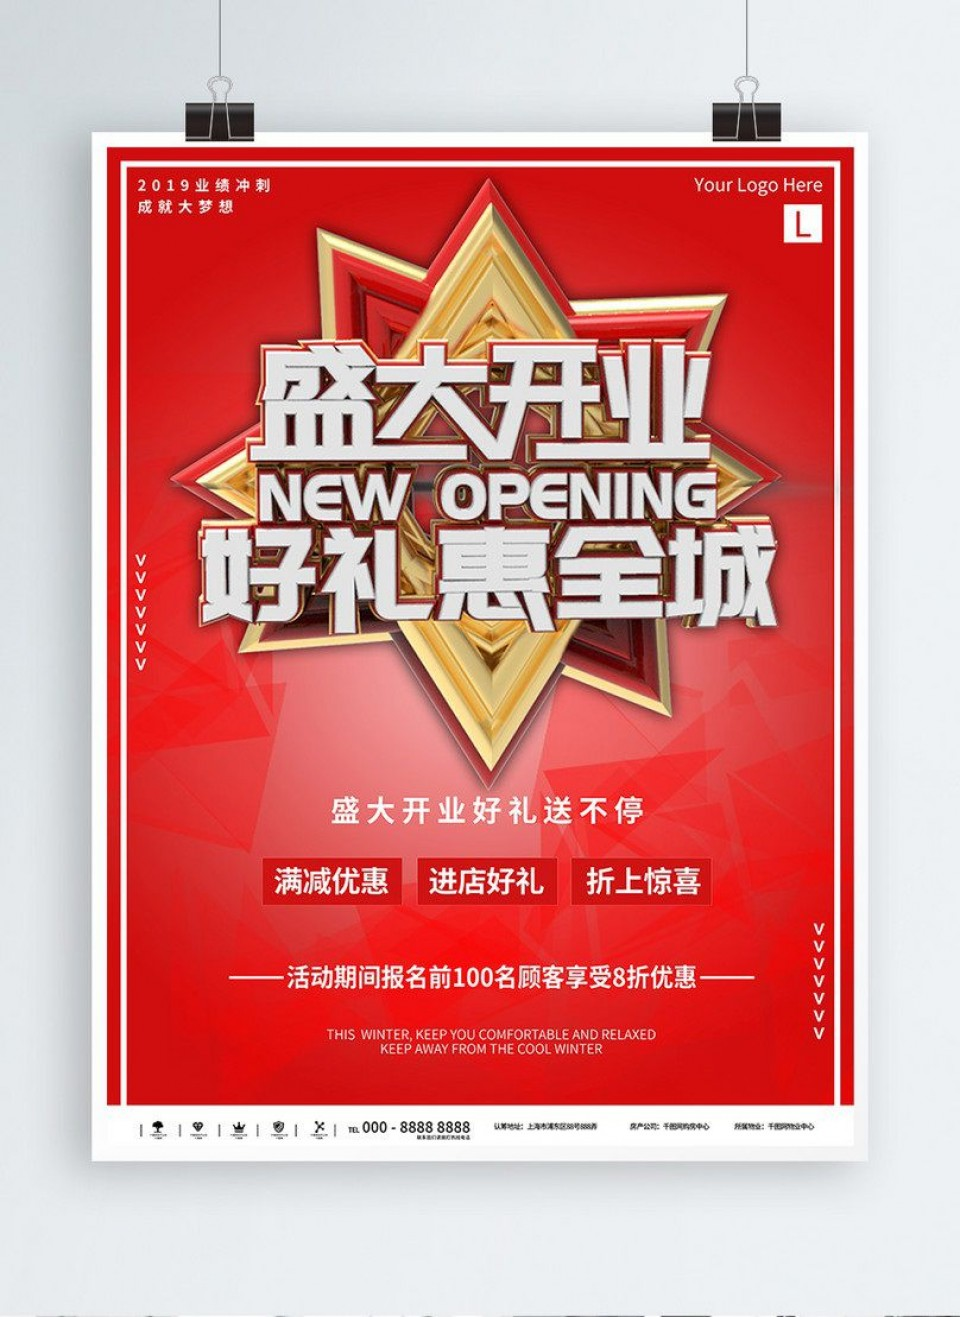 005 Surprising Grand Opening Flyer Template Image  Free Psd Busines960